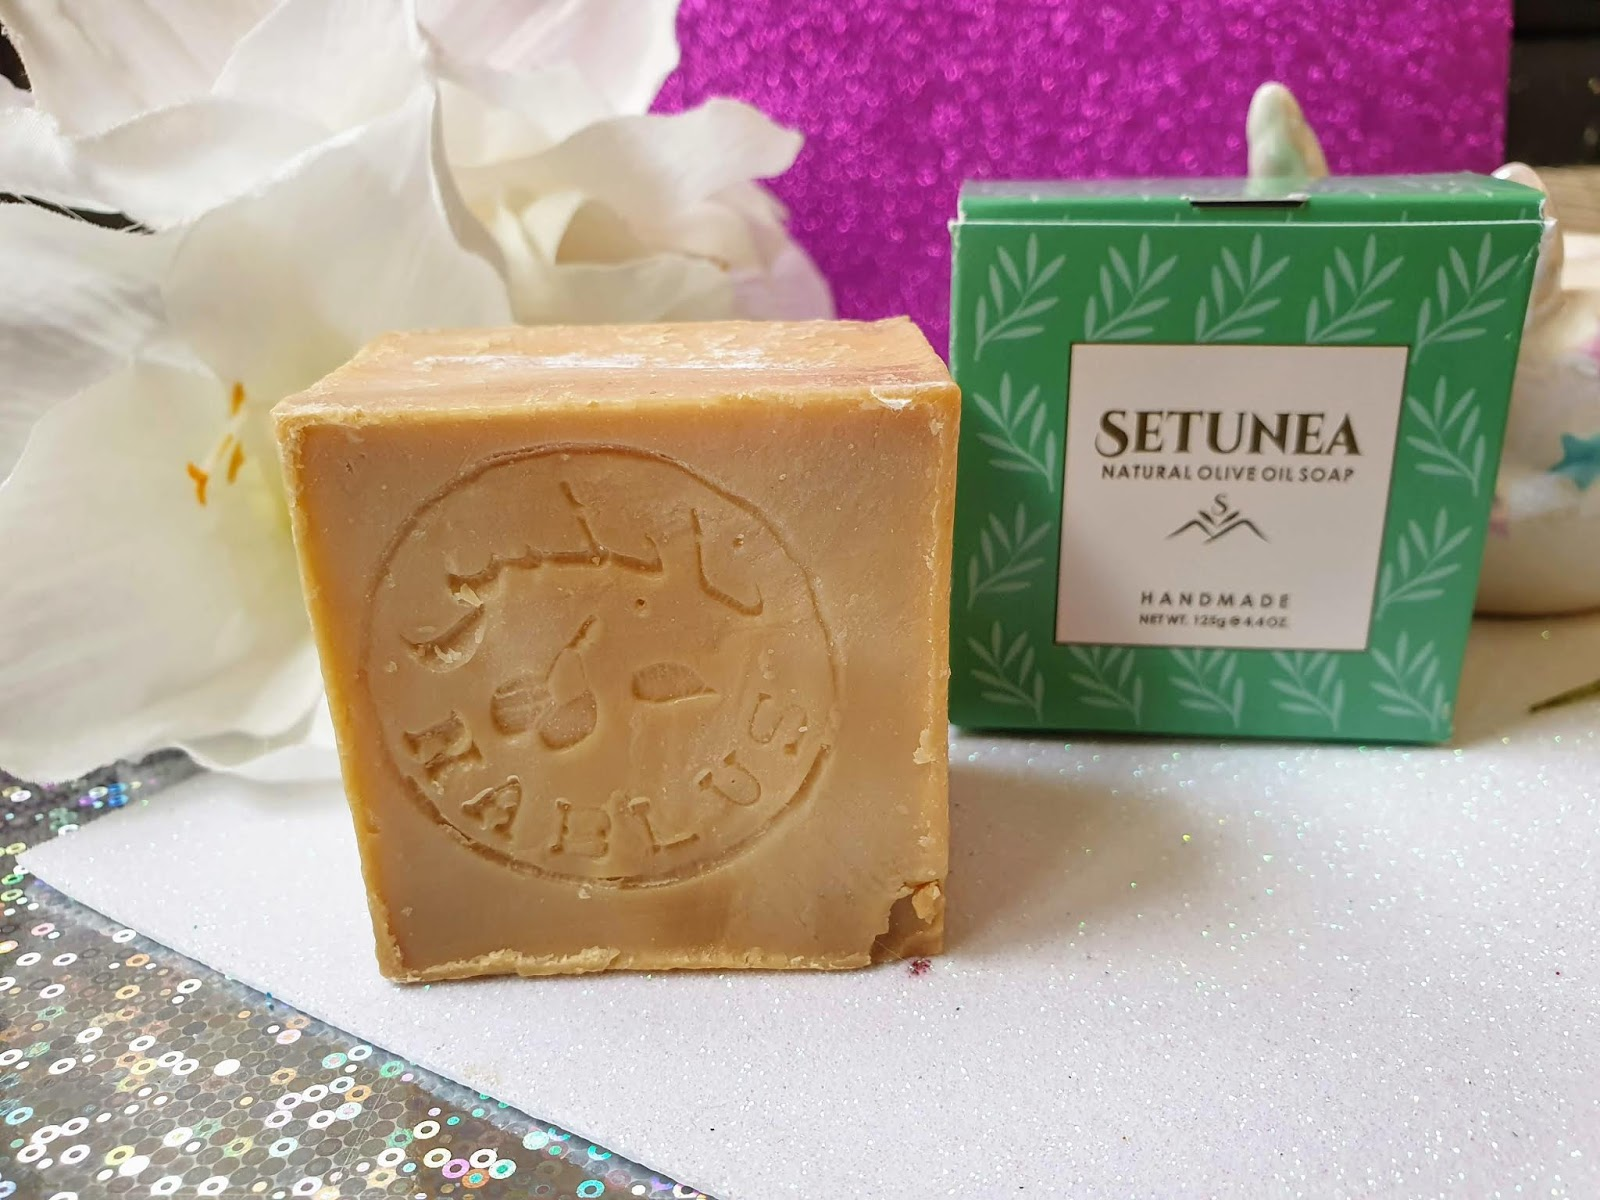 Setunea Natural Olive Oil Soap